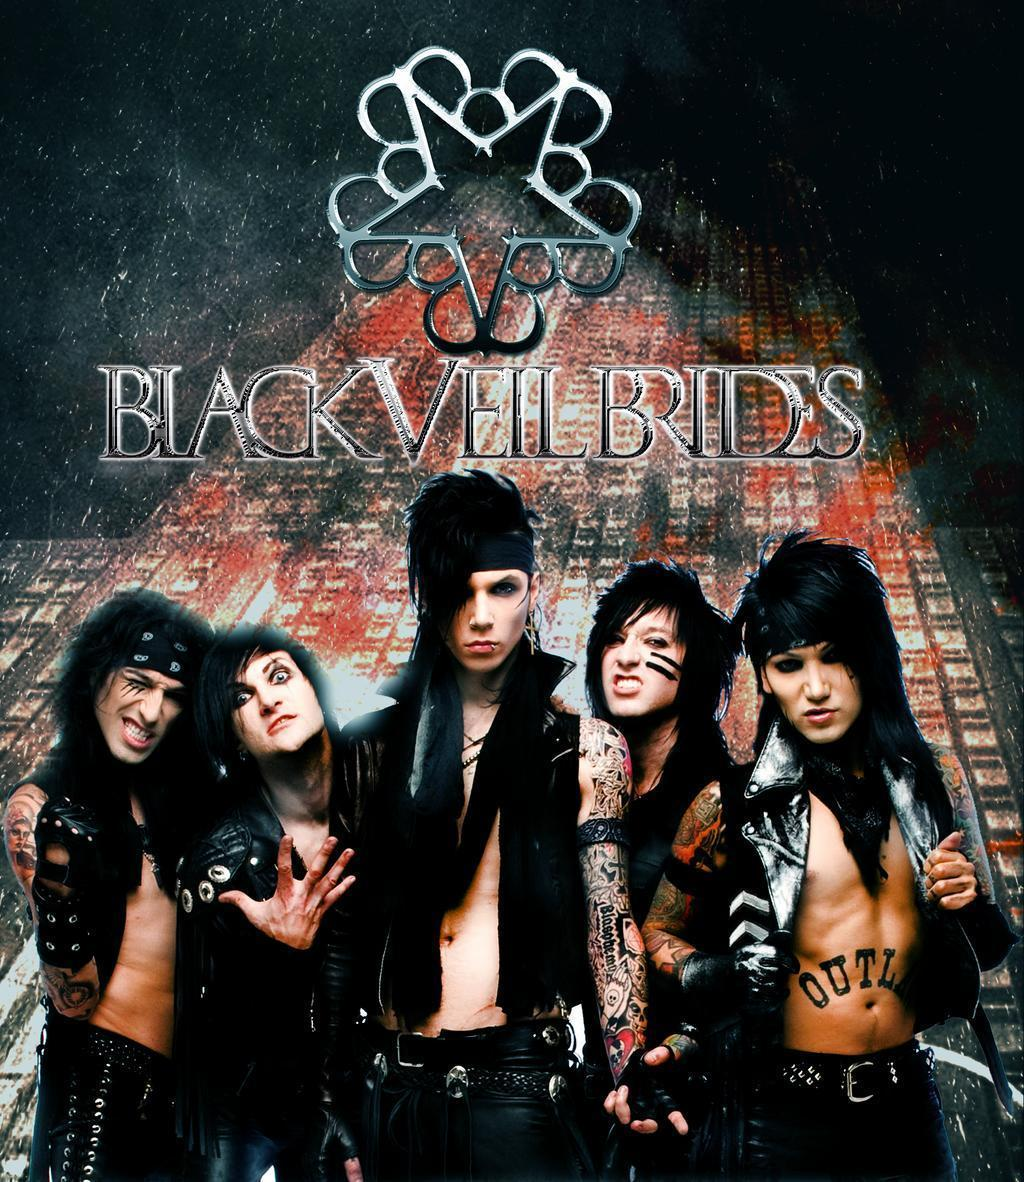 Black veil brides consider, that